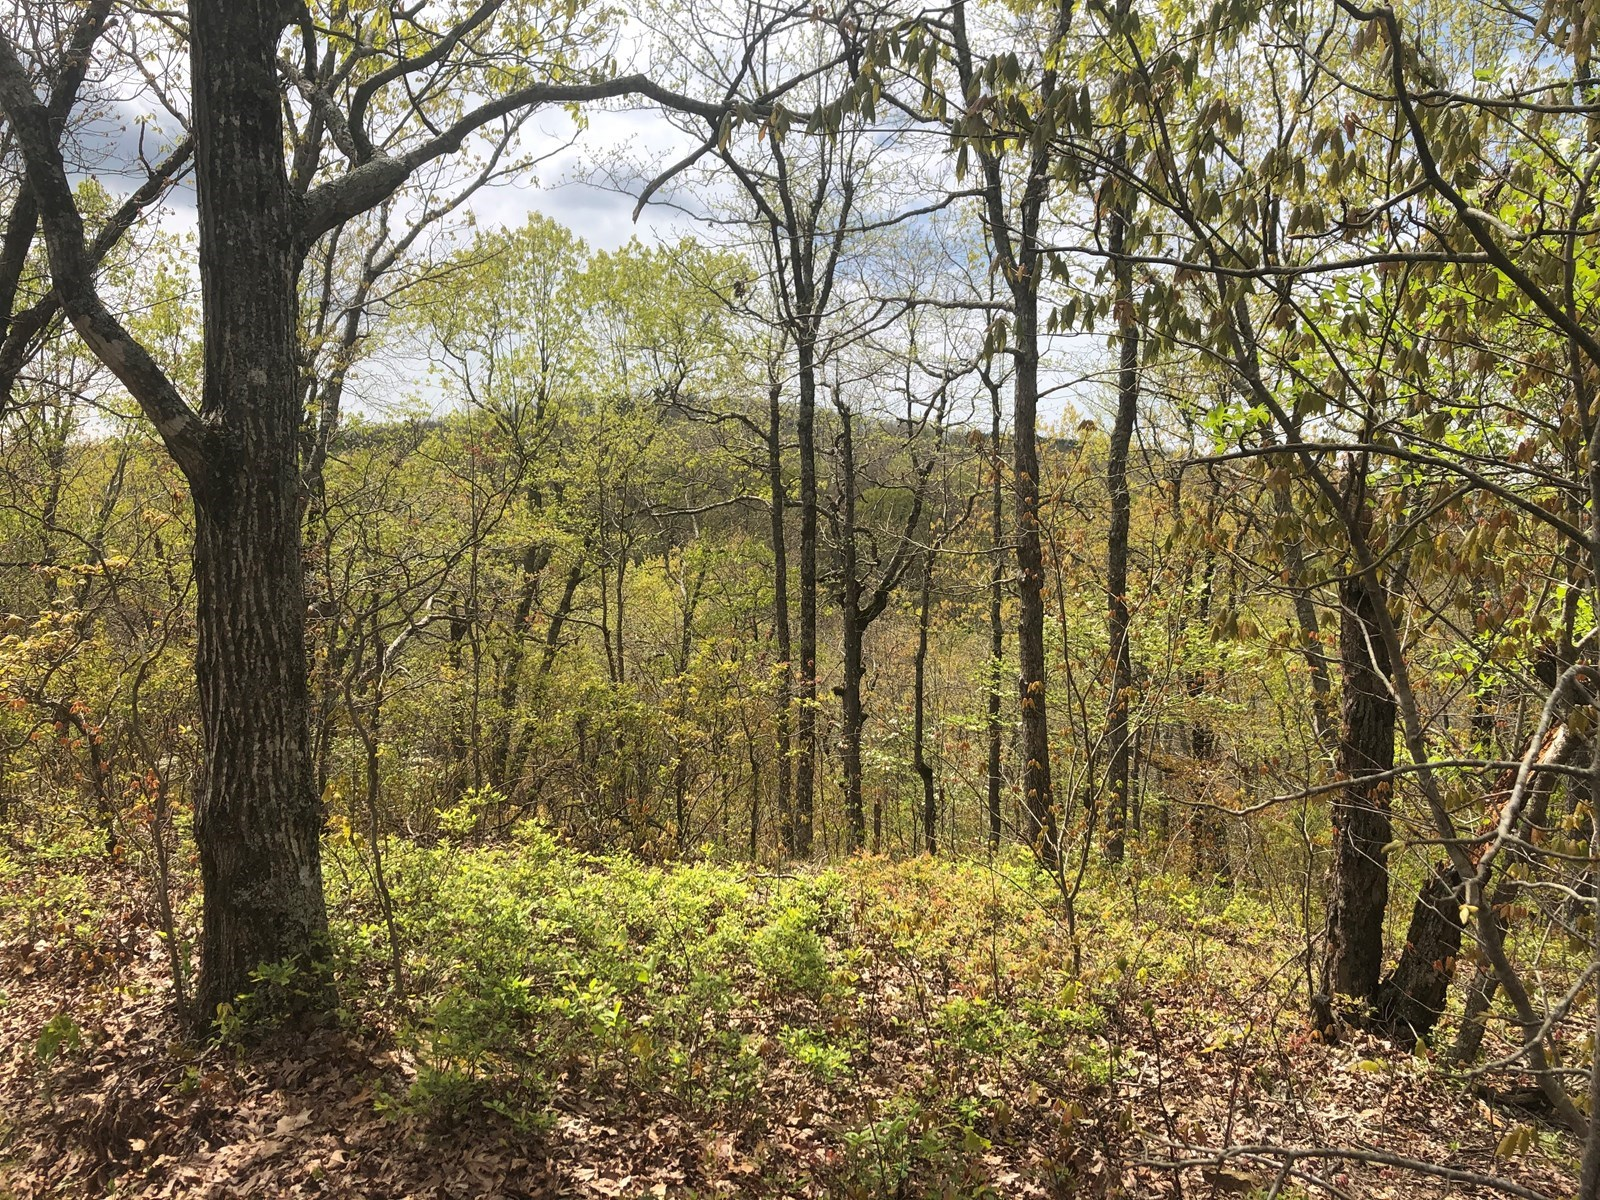 37 Acres of Arkansas Hunting and Recreational Land